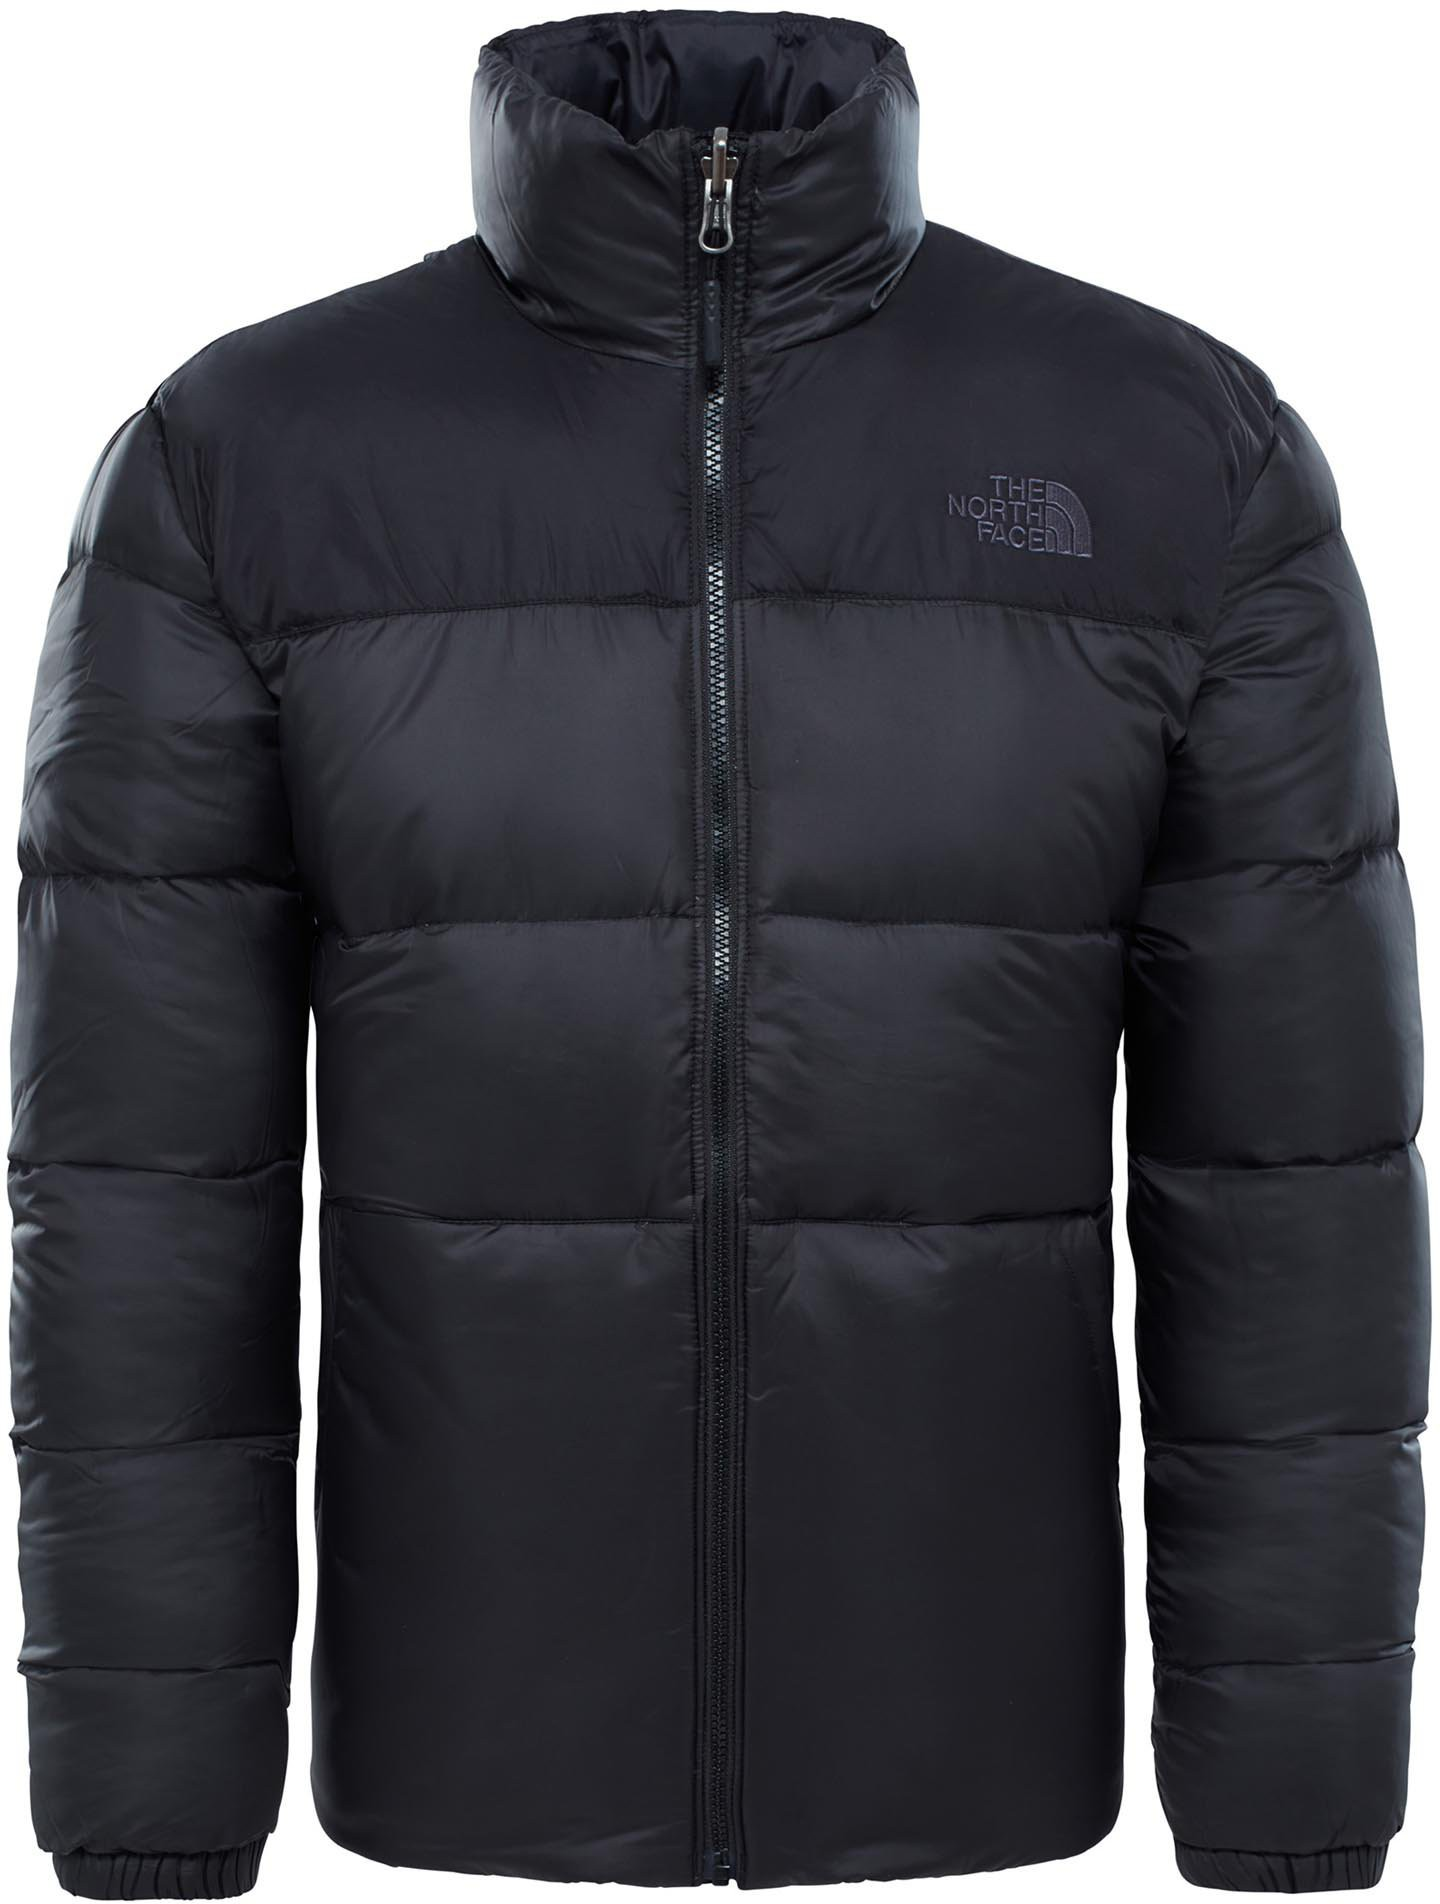 The North Face Nuptse III Outdoorjacke günstig kaufen